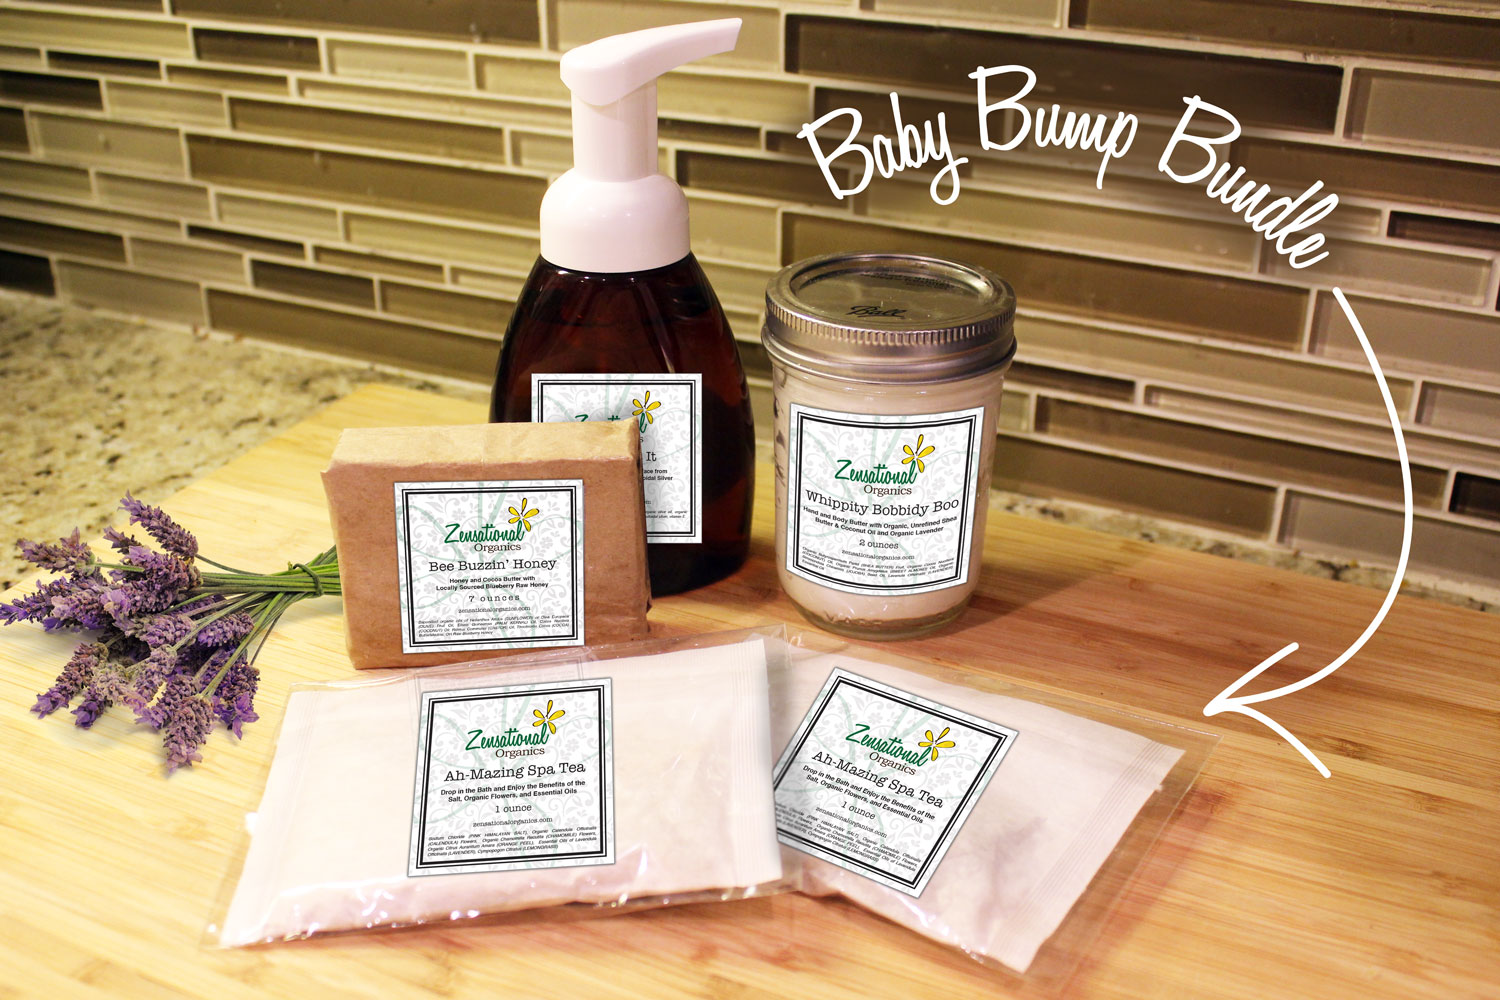 Zensational Organics' Baby Bump Bundle | Bottles & Banter